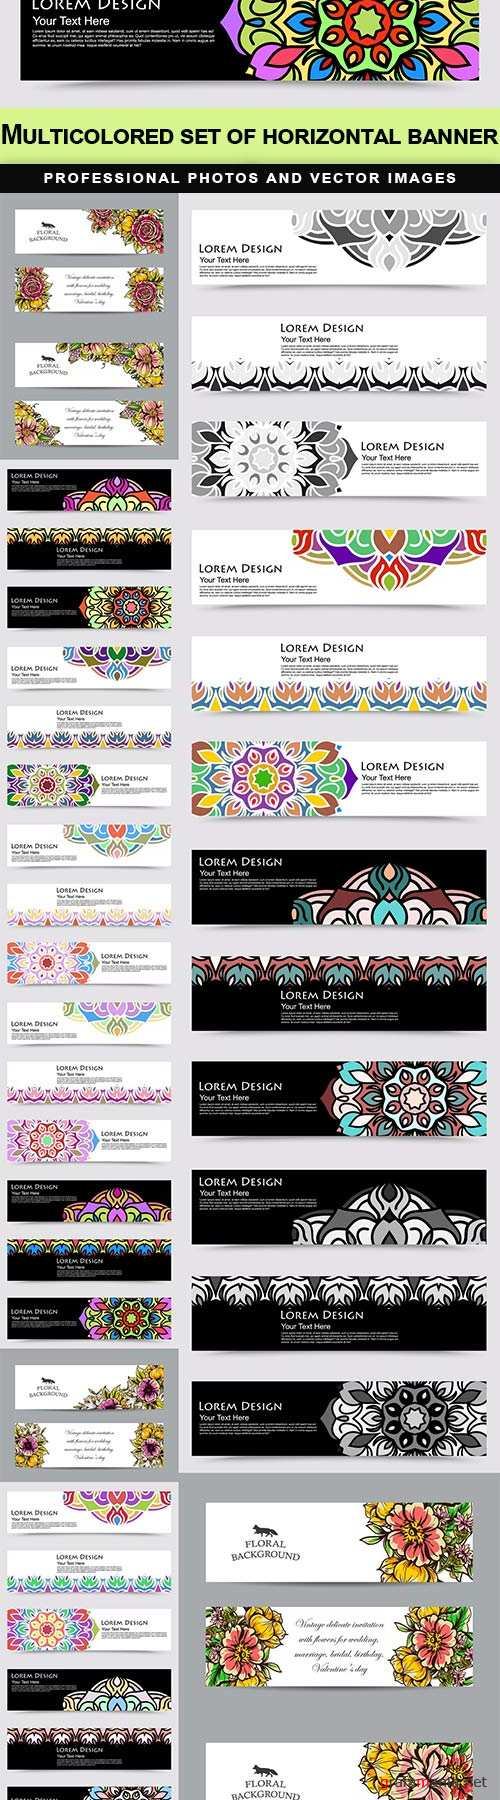 Multicolored set of horizontal banner - 19  EPS